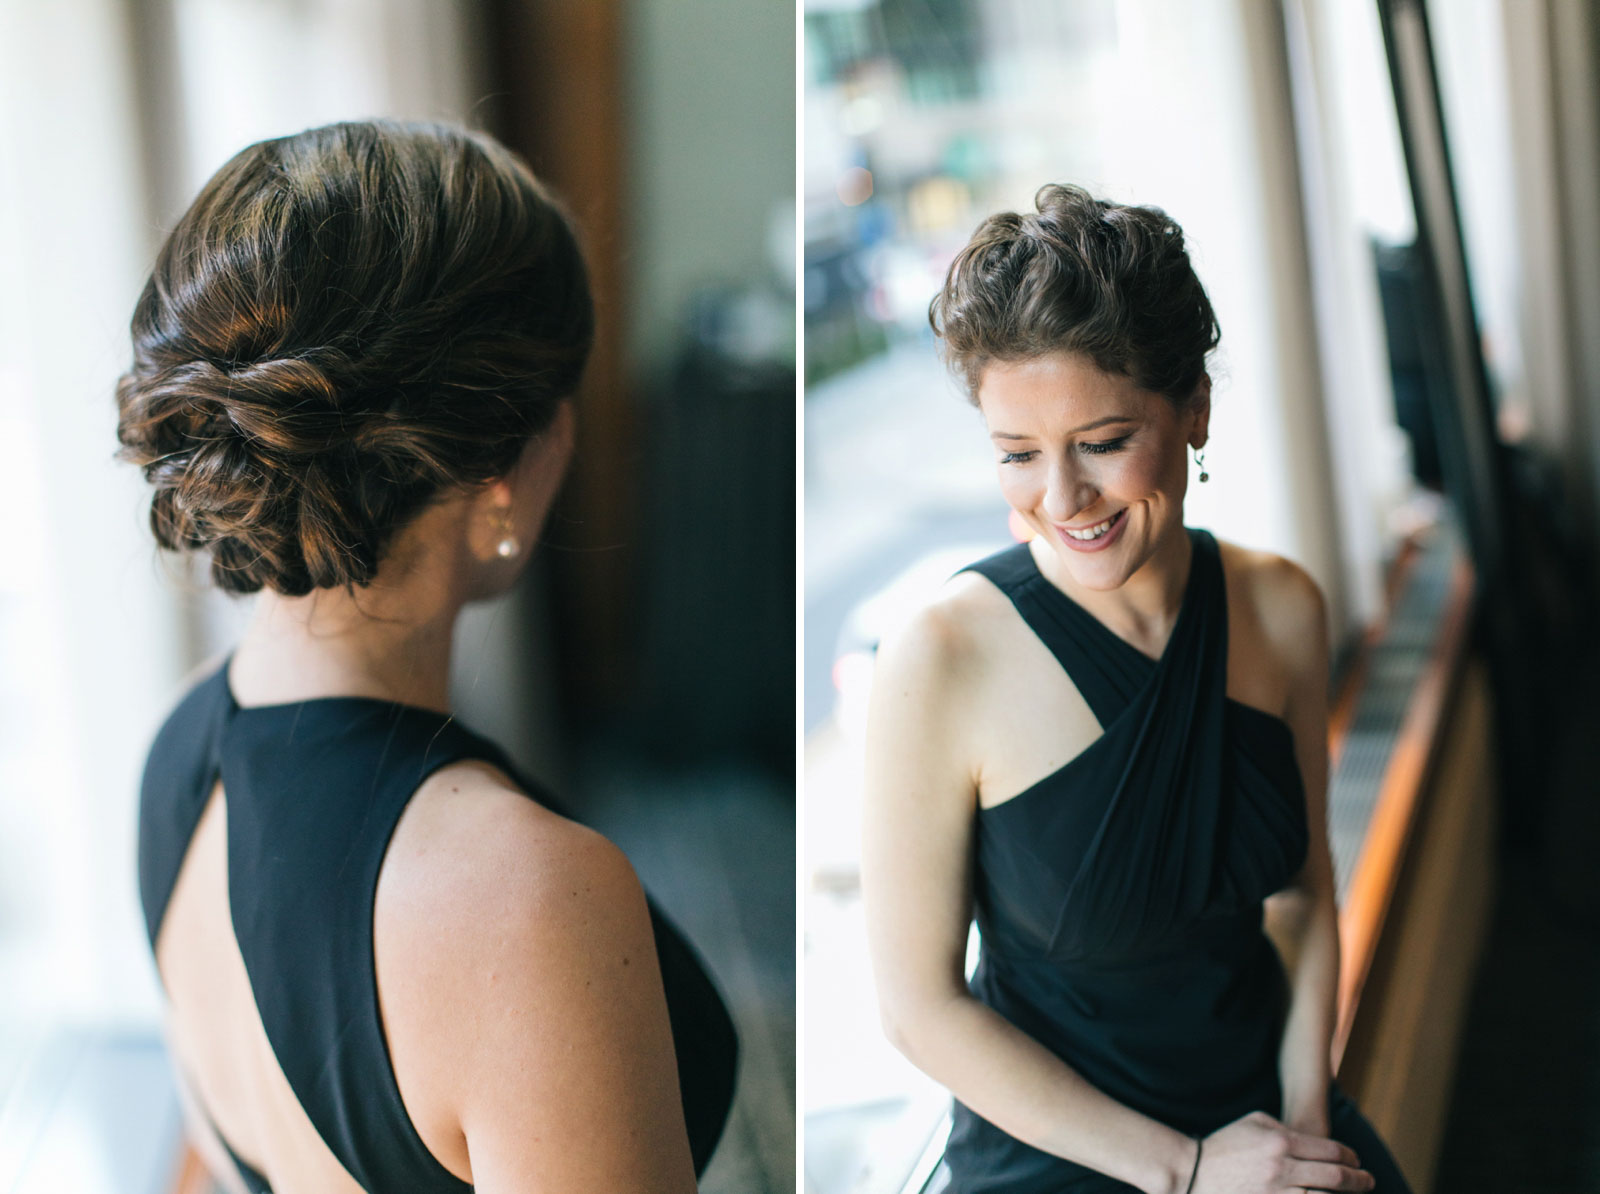 Portraits of bridesmaids and bridesmaids hairdo in natural light in bridal suite at Ritz-Carlton